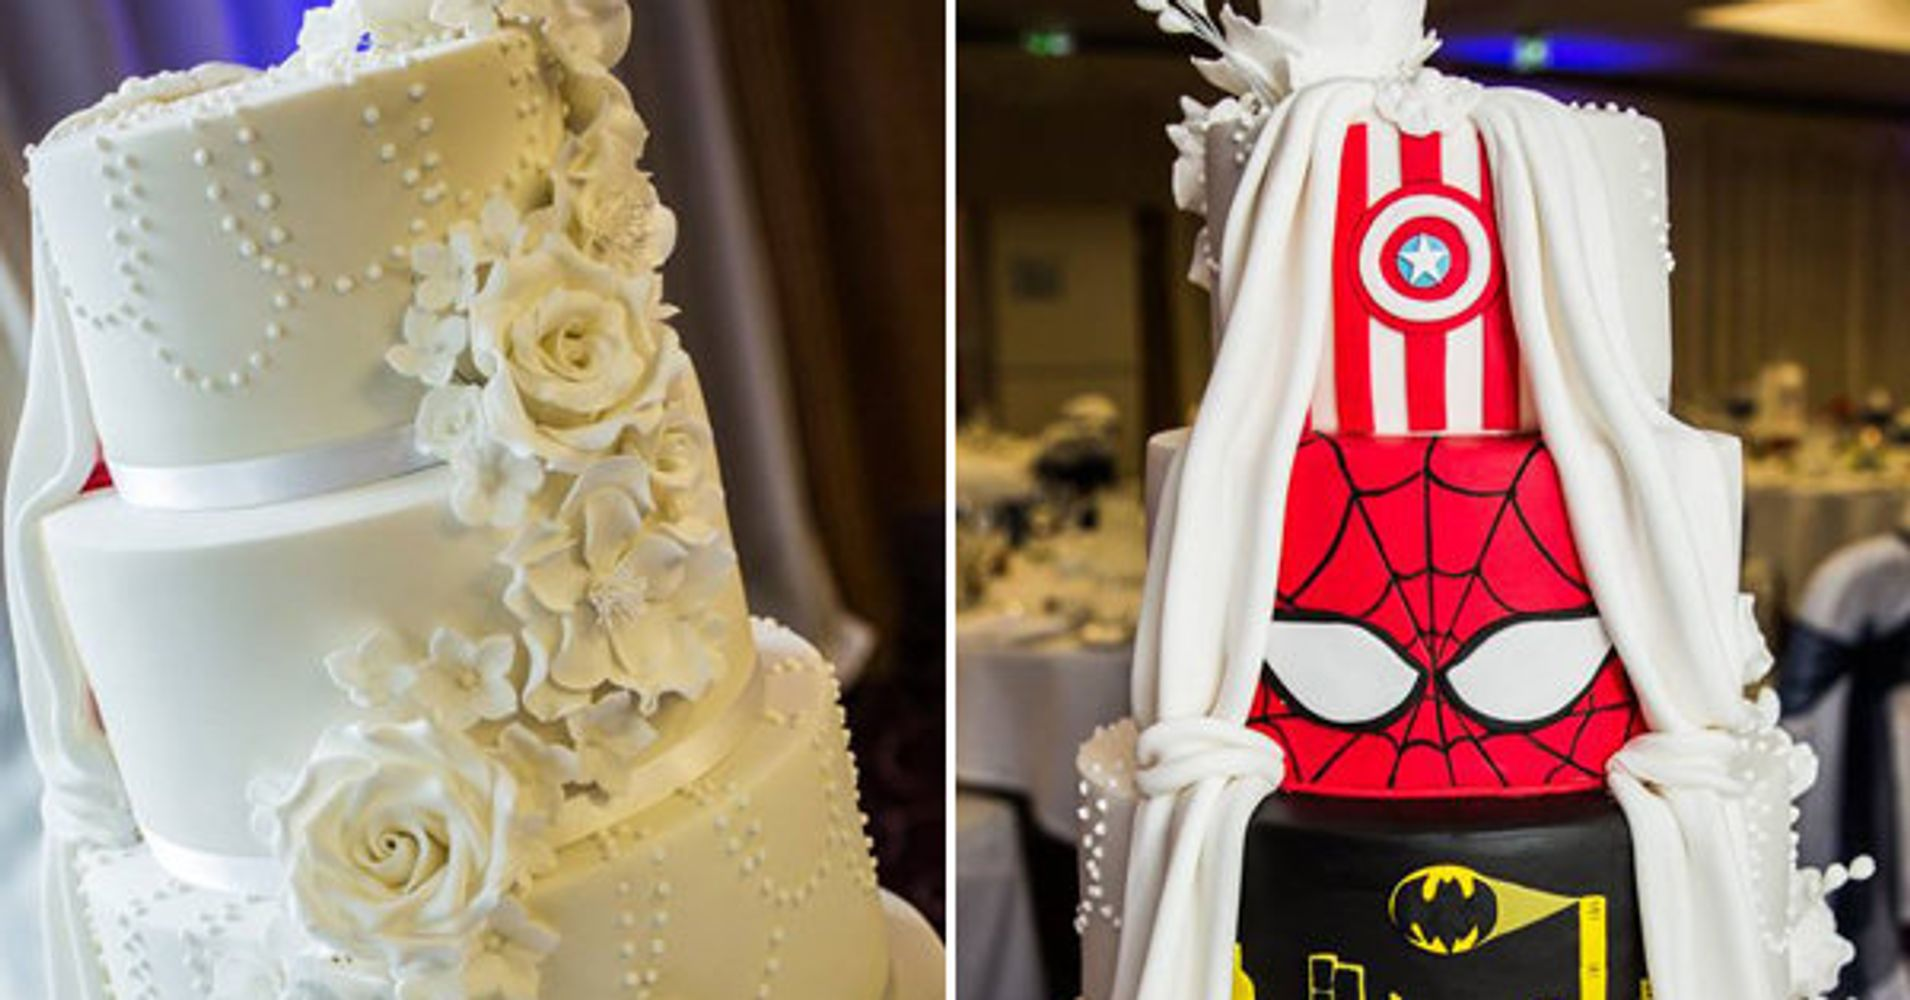 This Supremely Awesome Wedding Cake Will Make You Do A